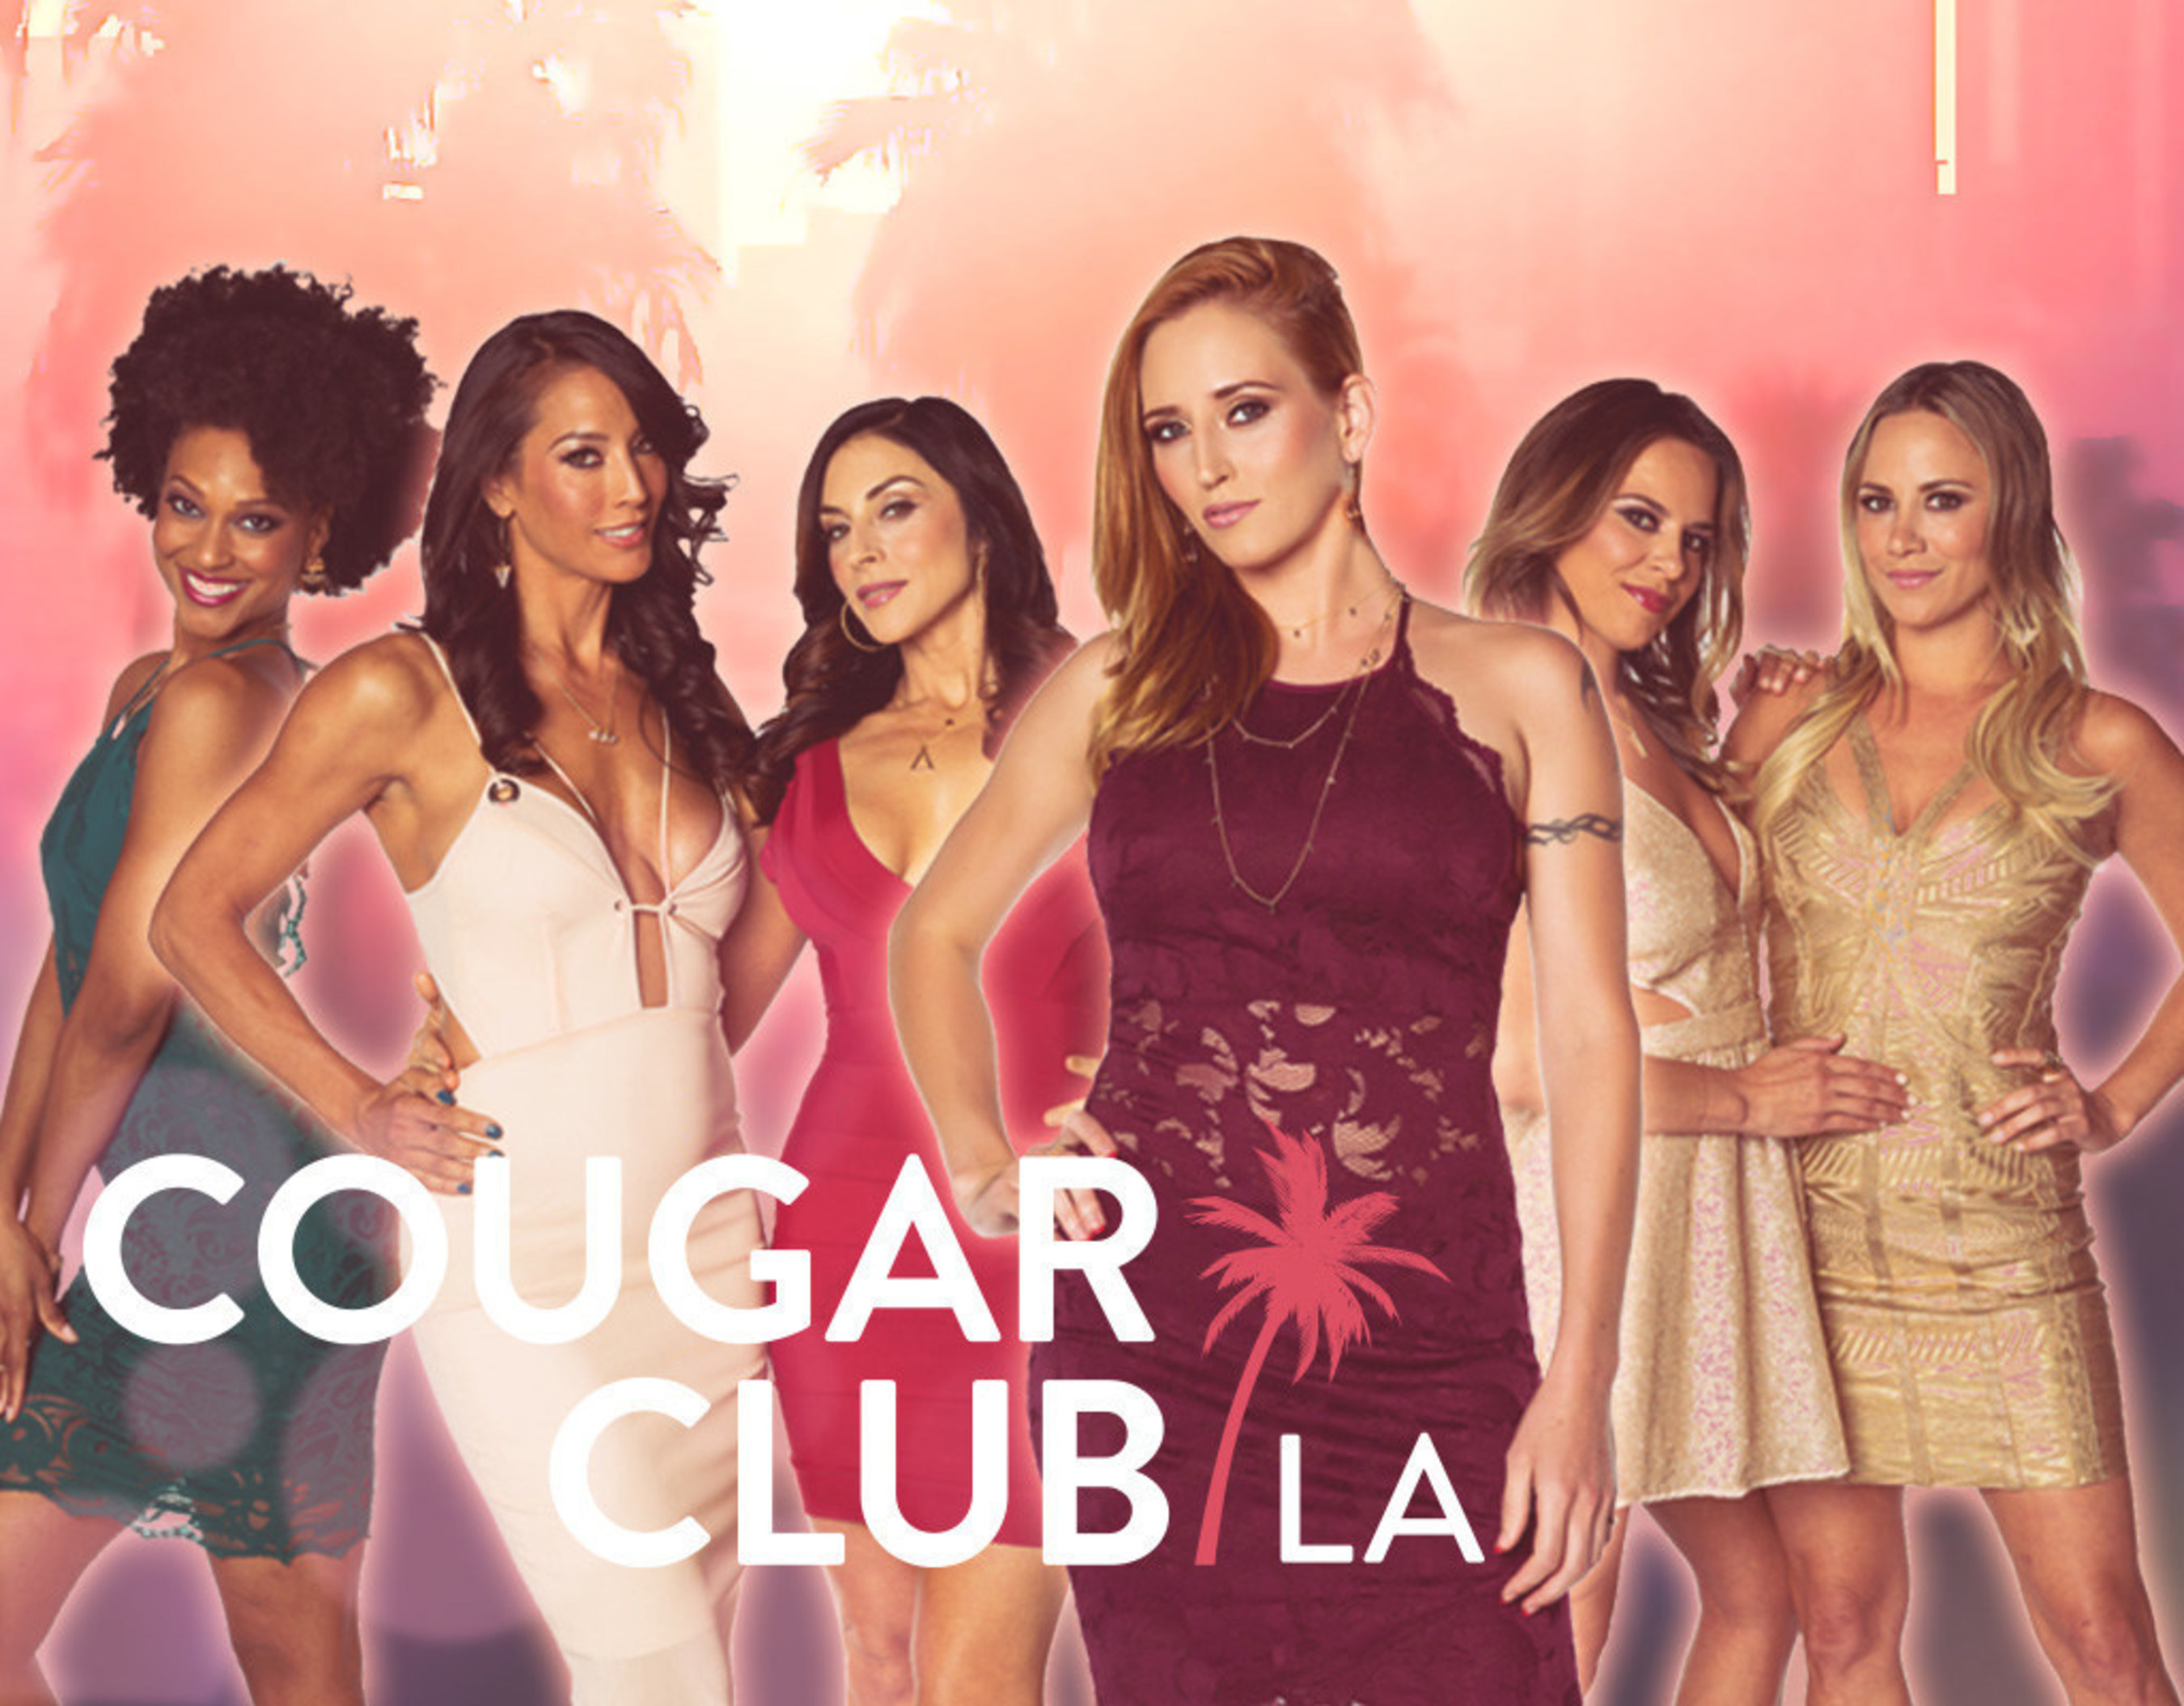 Playboy Tvs Cougar Club La